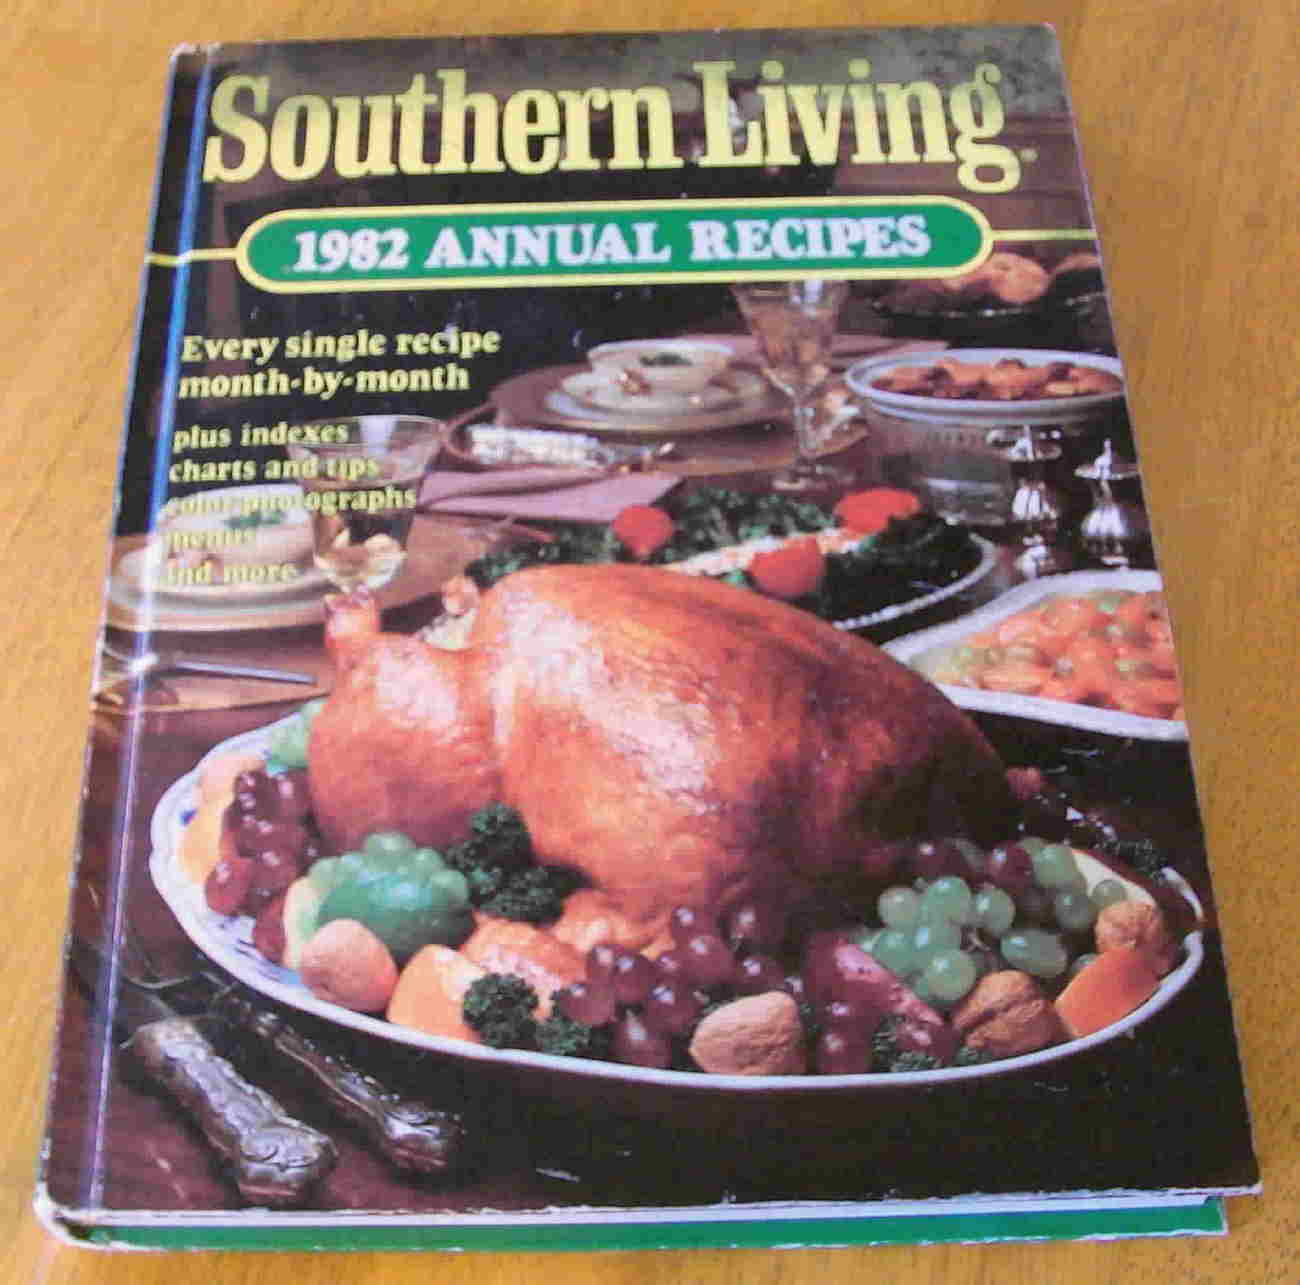 Cookbook Southern Living 1982 Annual Recipes